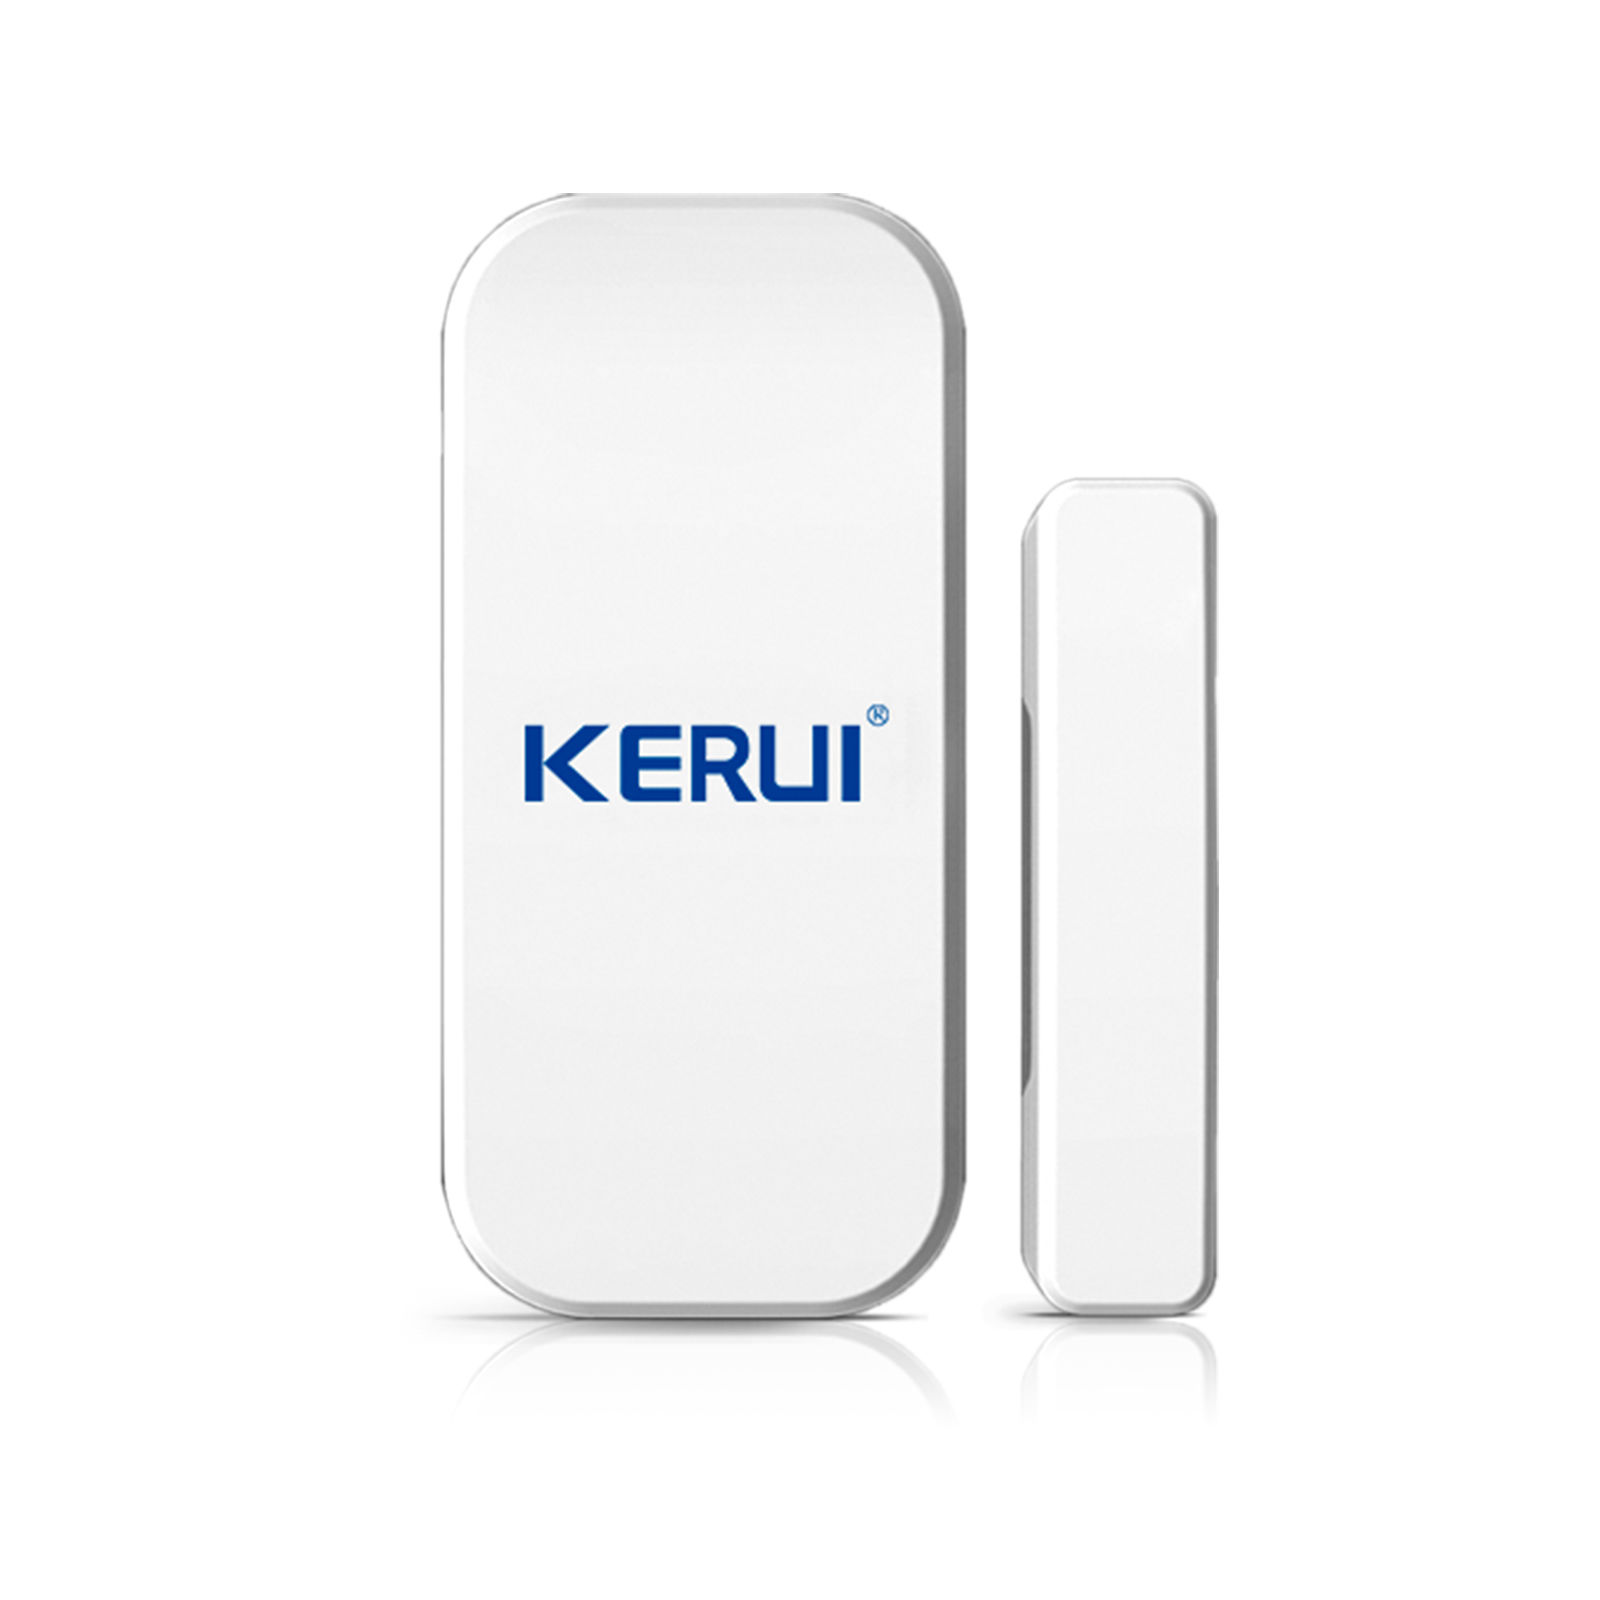 Kerui G18 Wireless Gsm Home Security Burglar Alarm System Outdoor Contacts Wiring In Series Door Sensorx5